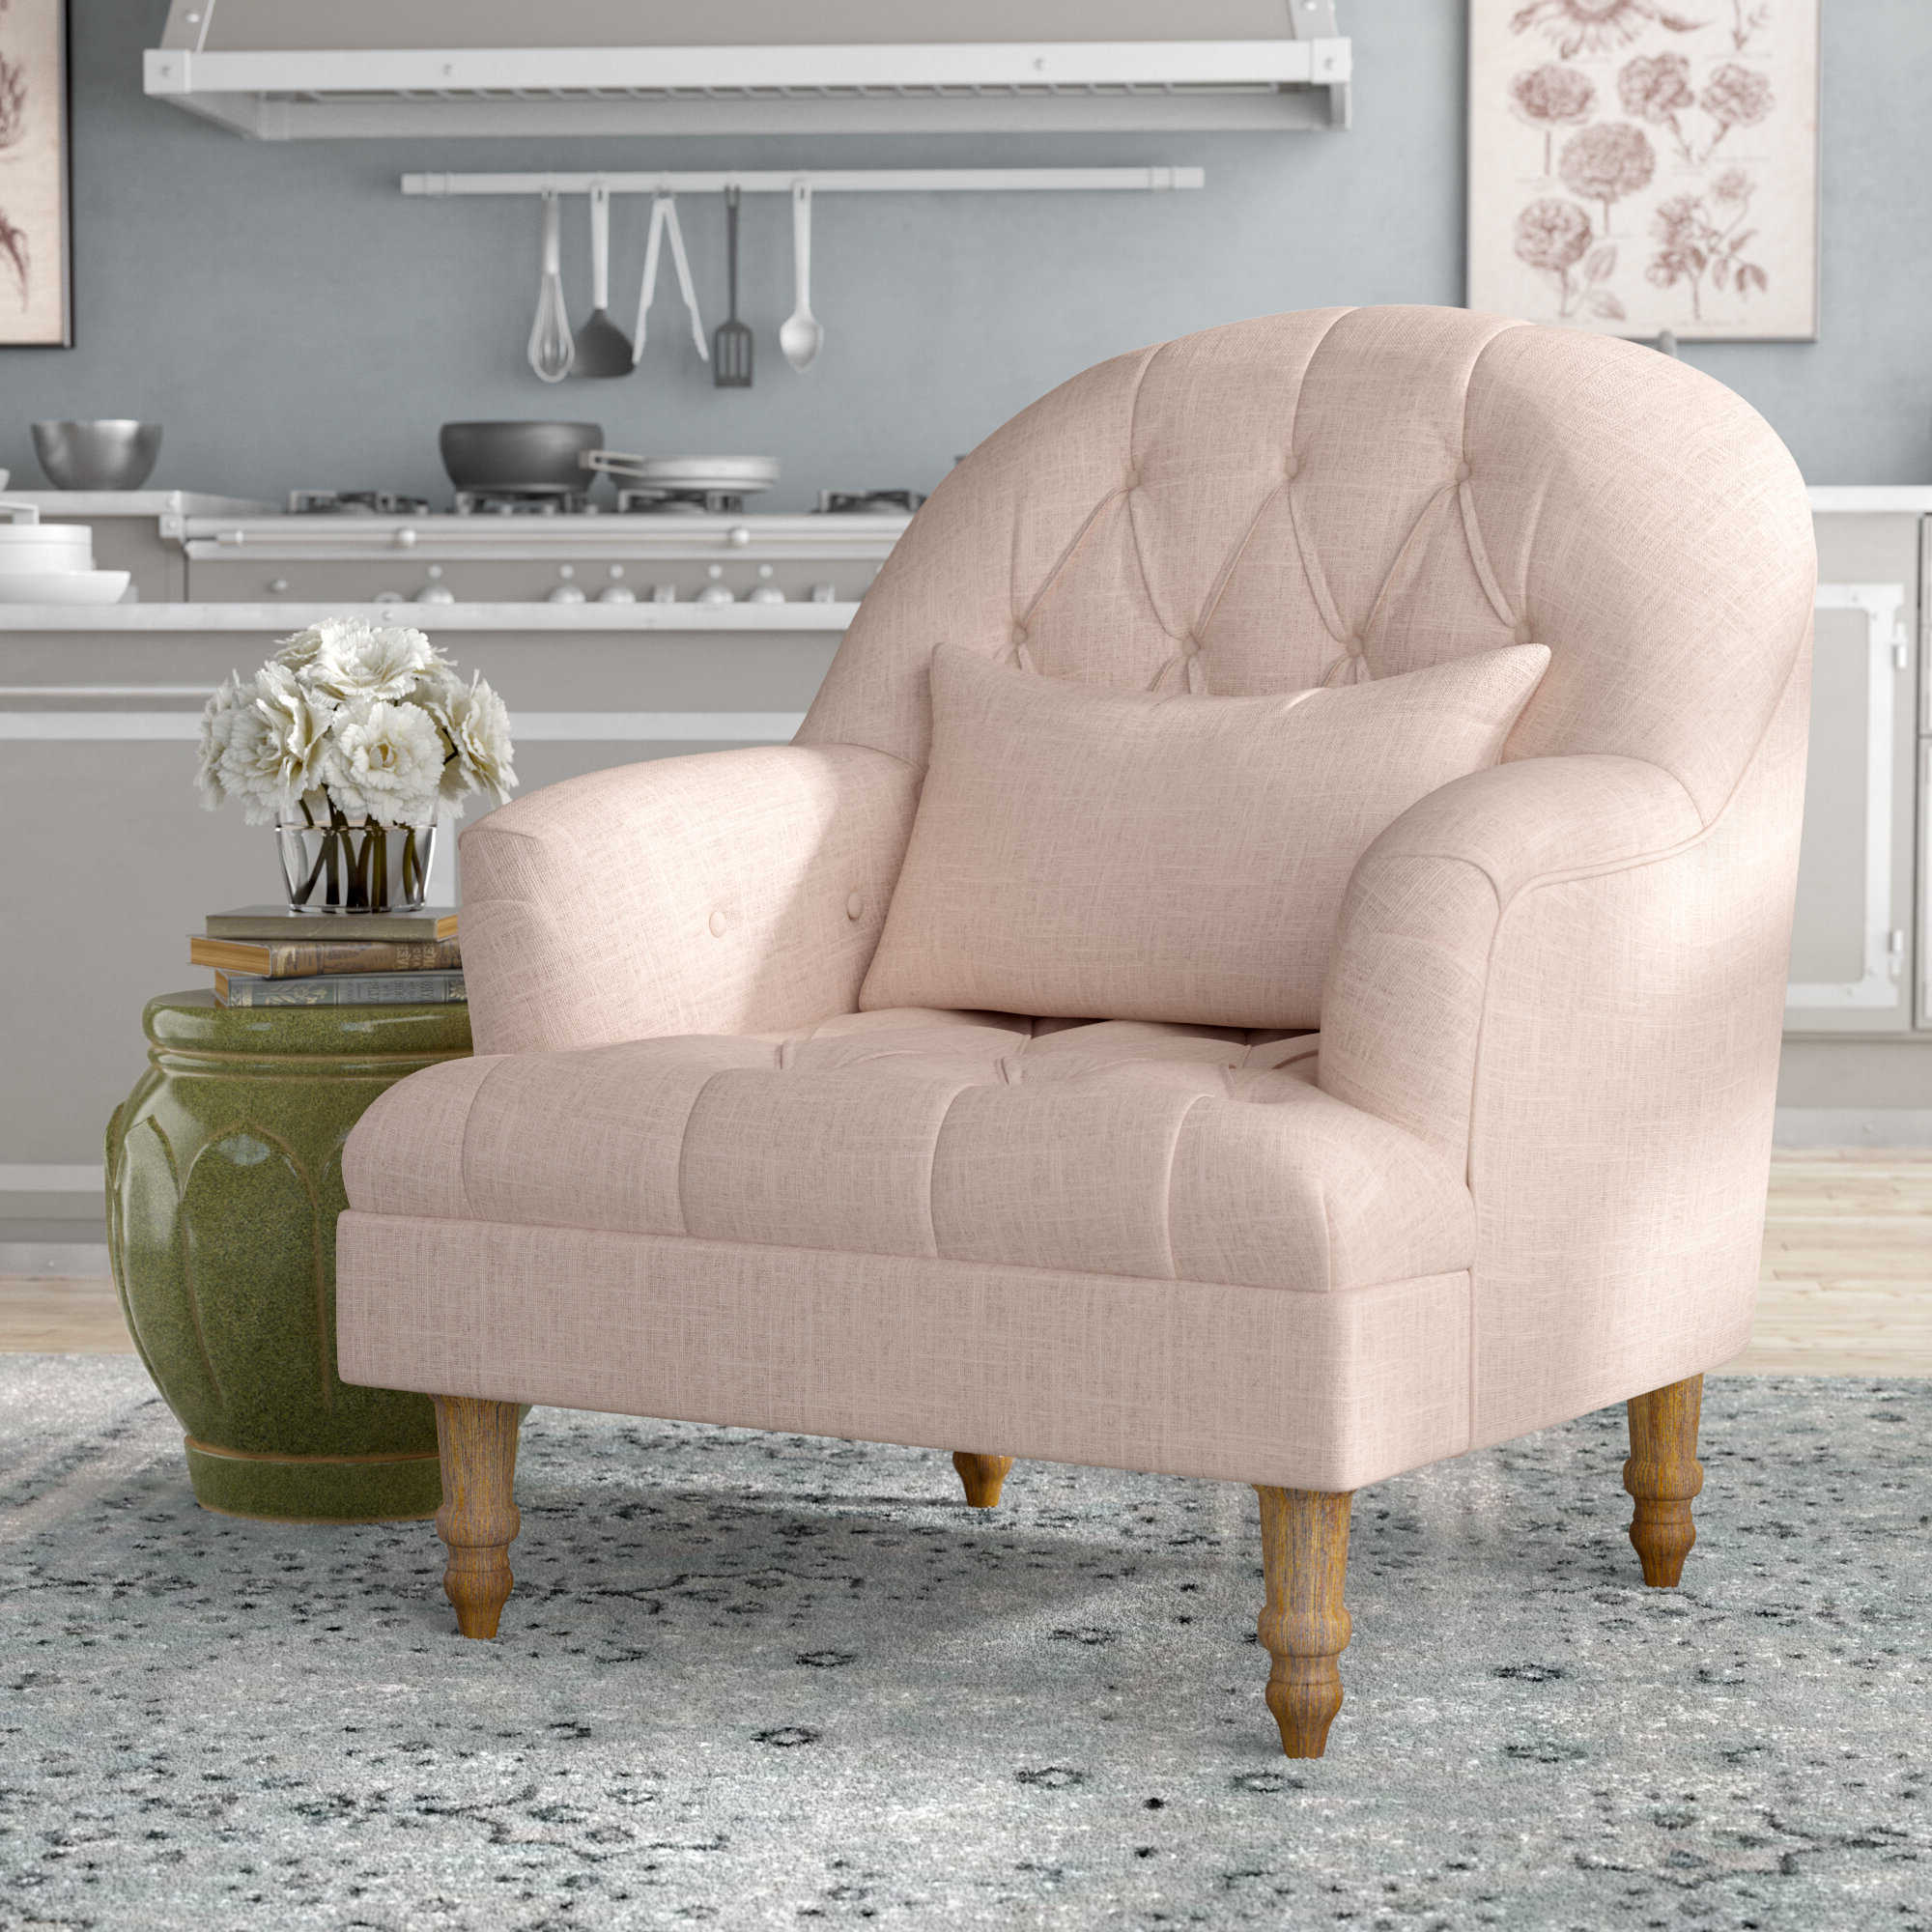 Most Recently Released Palafox Armchair Within Belz Tufted Polyester Armchairs (View 19 of 20)